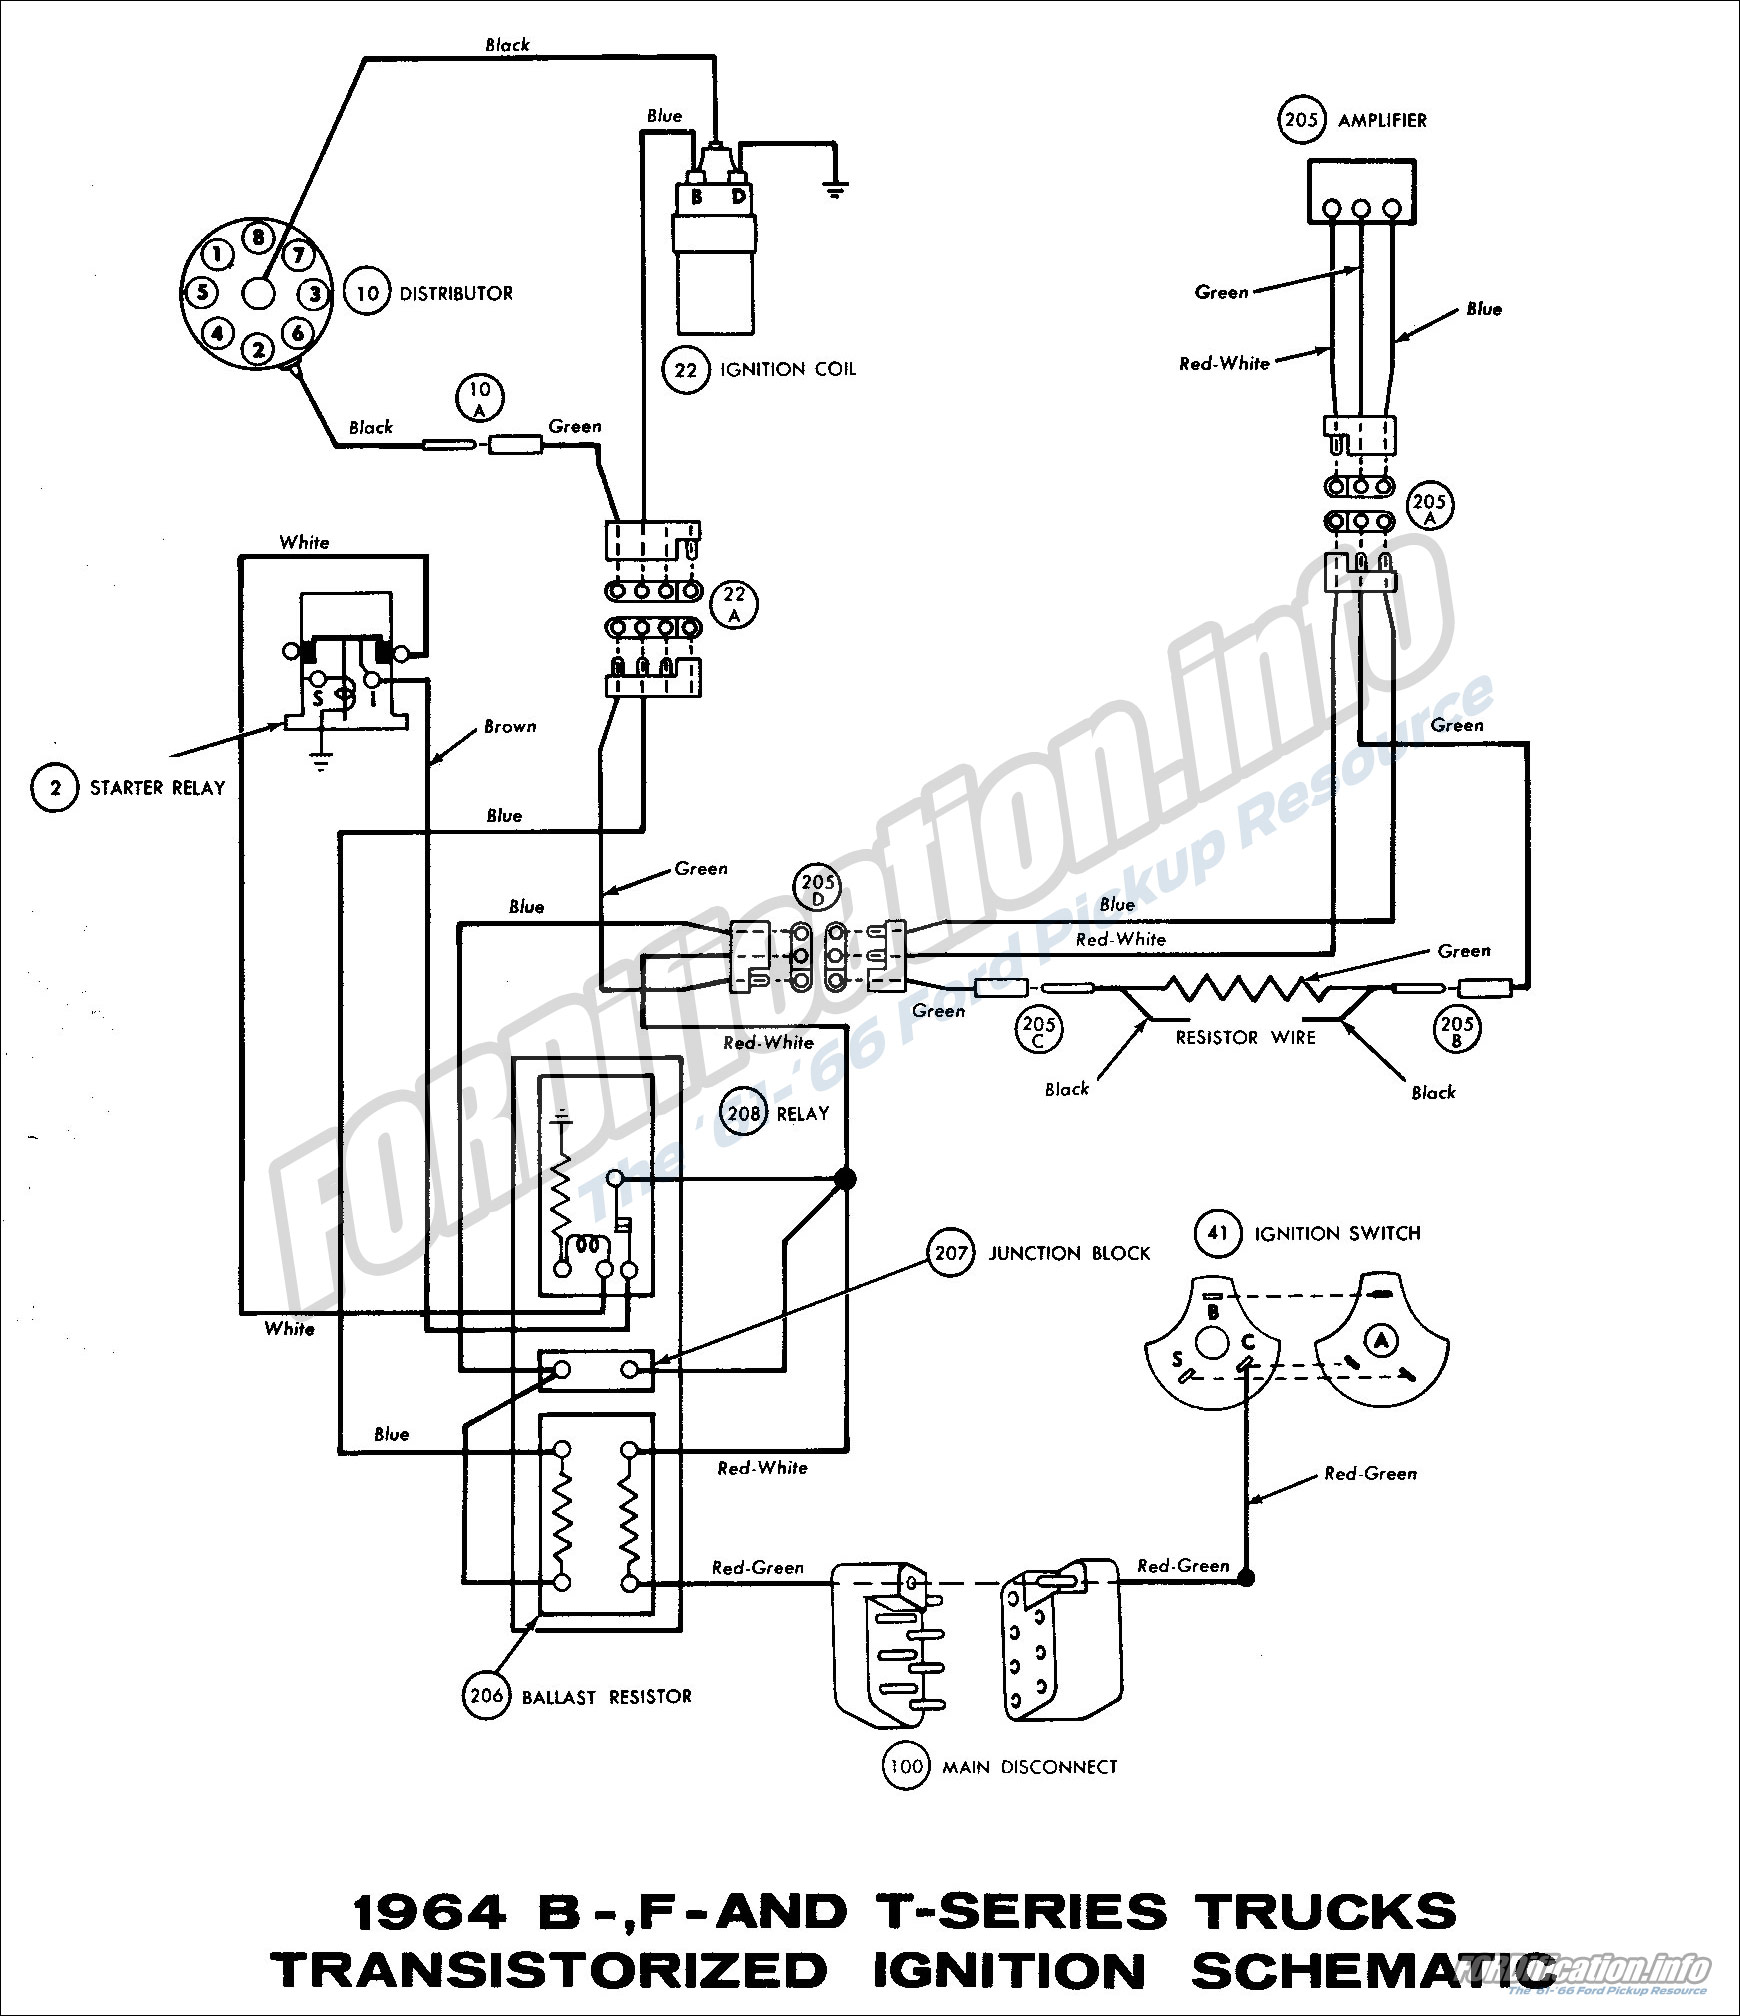 Ford Falcon Ignition Wiring Diagram | Wiring Liry on